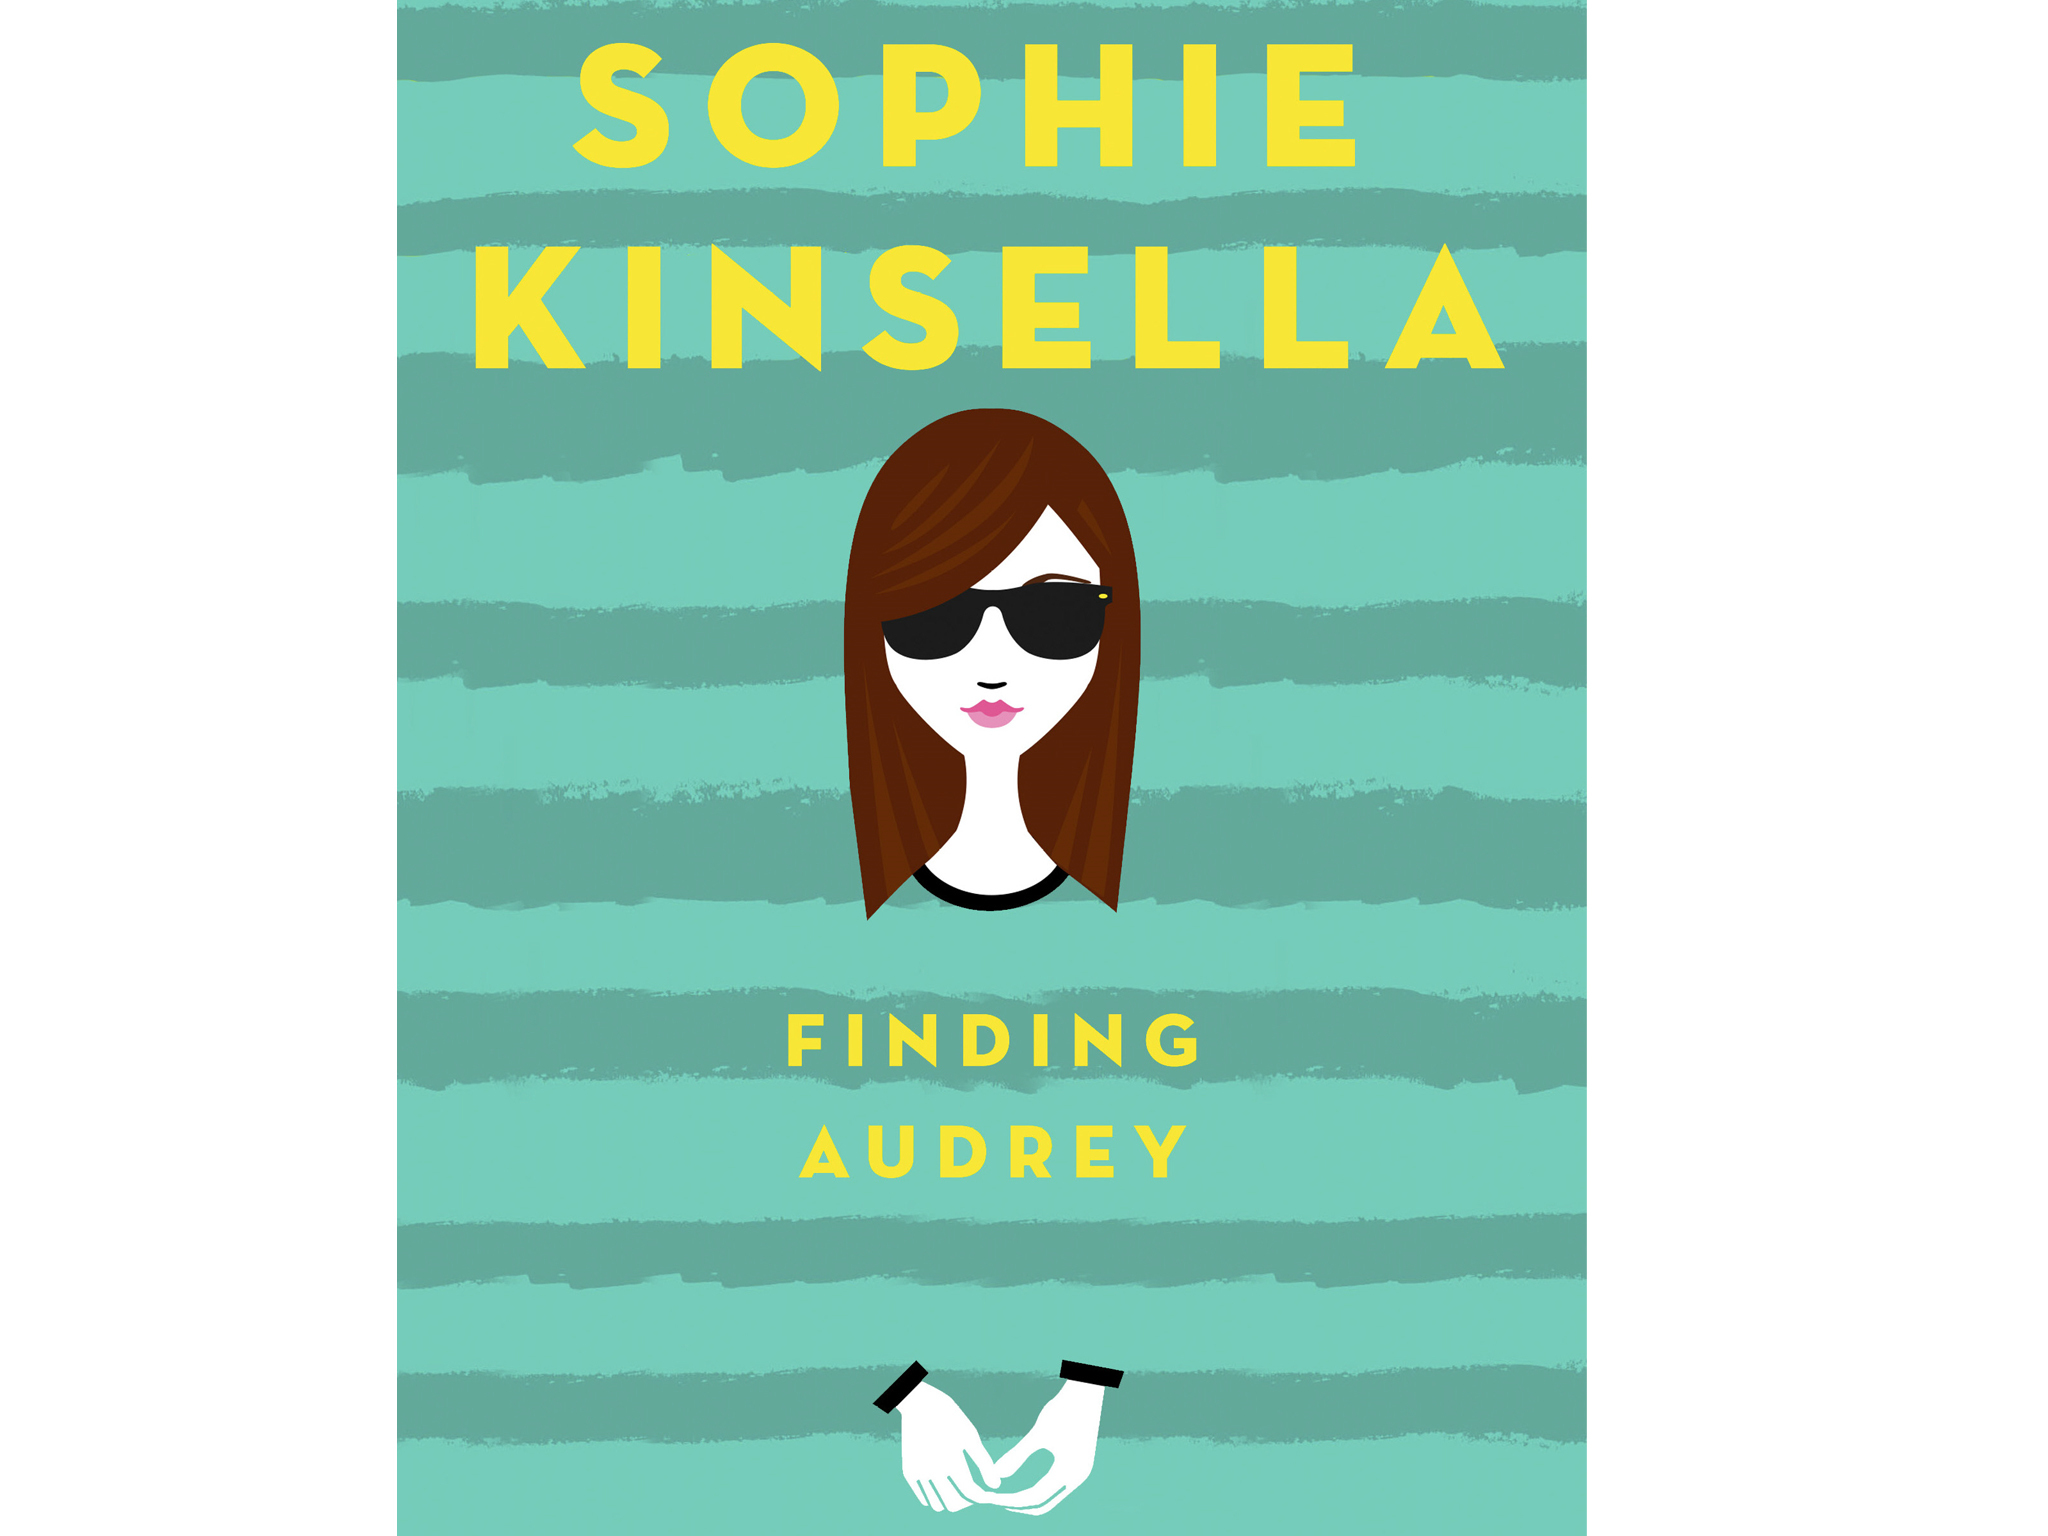 100 best children's books: Finding Audrey